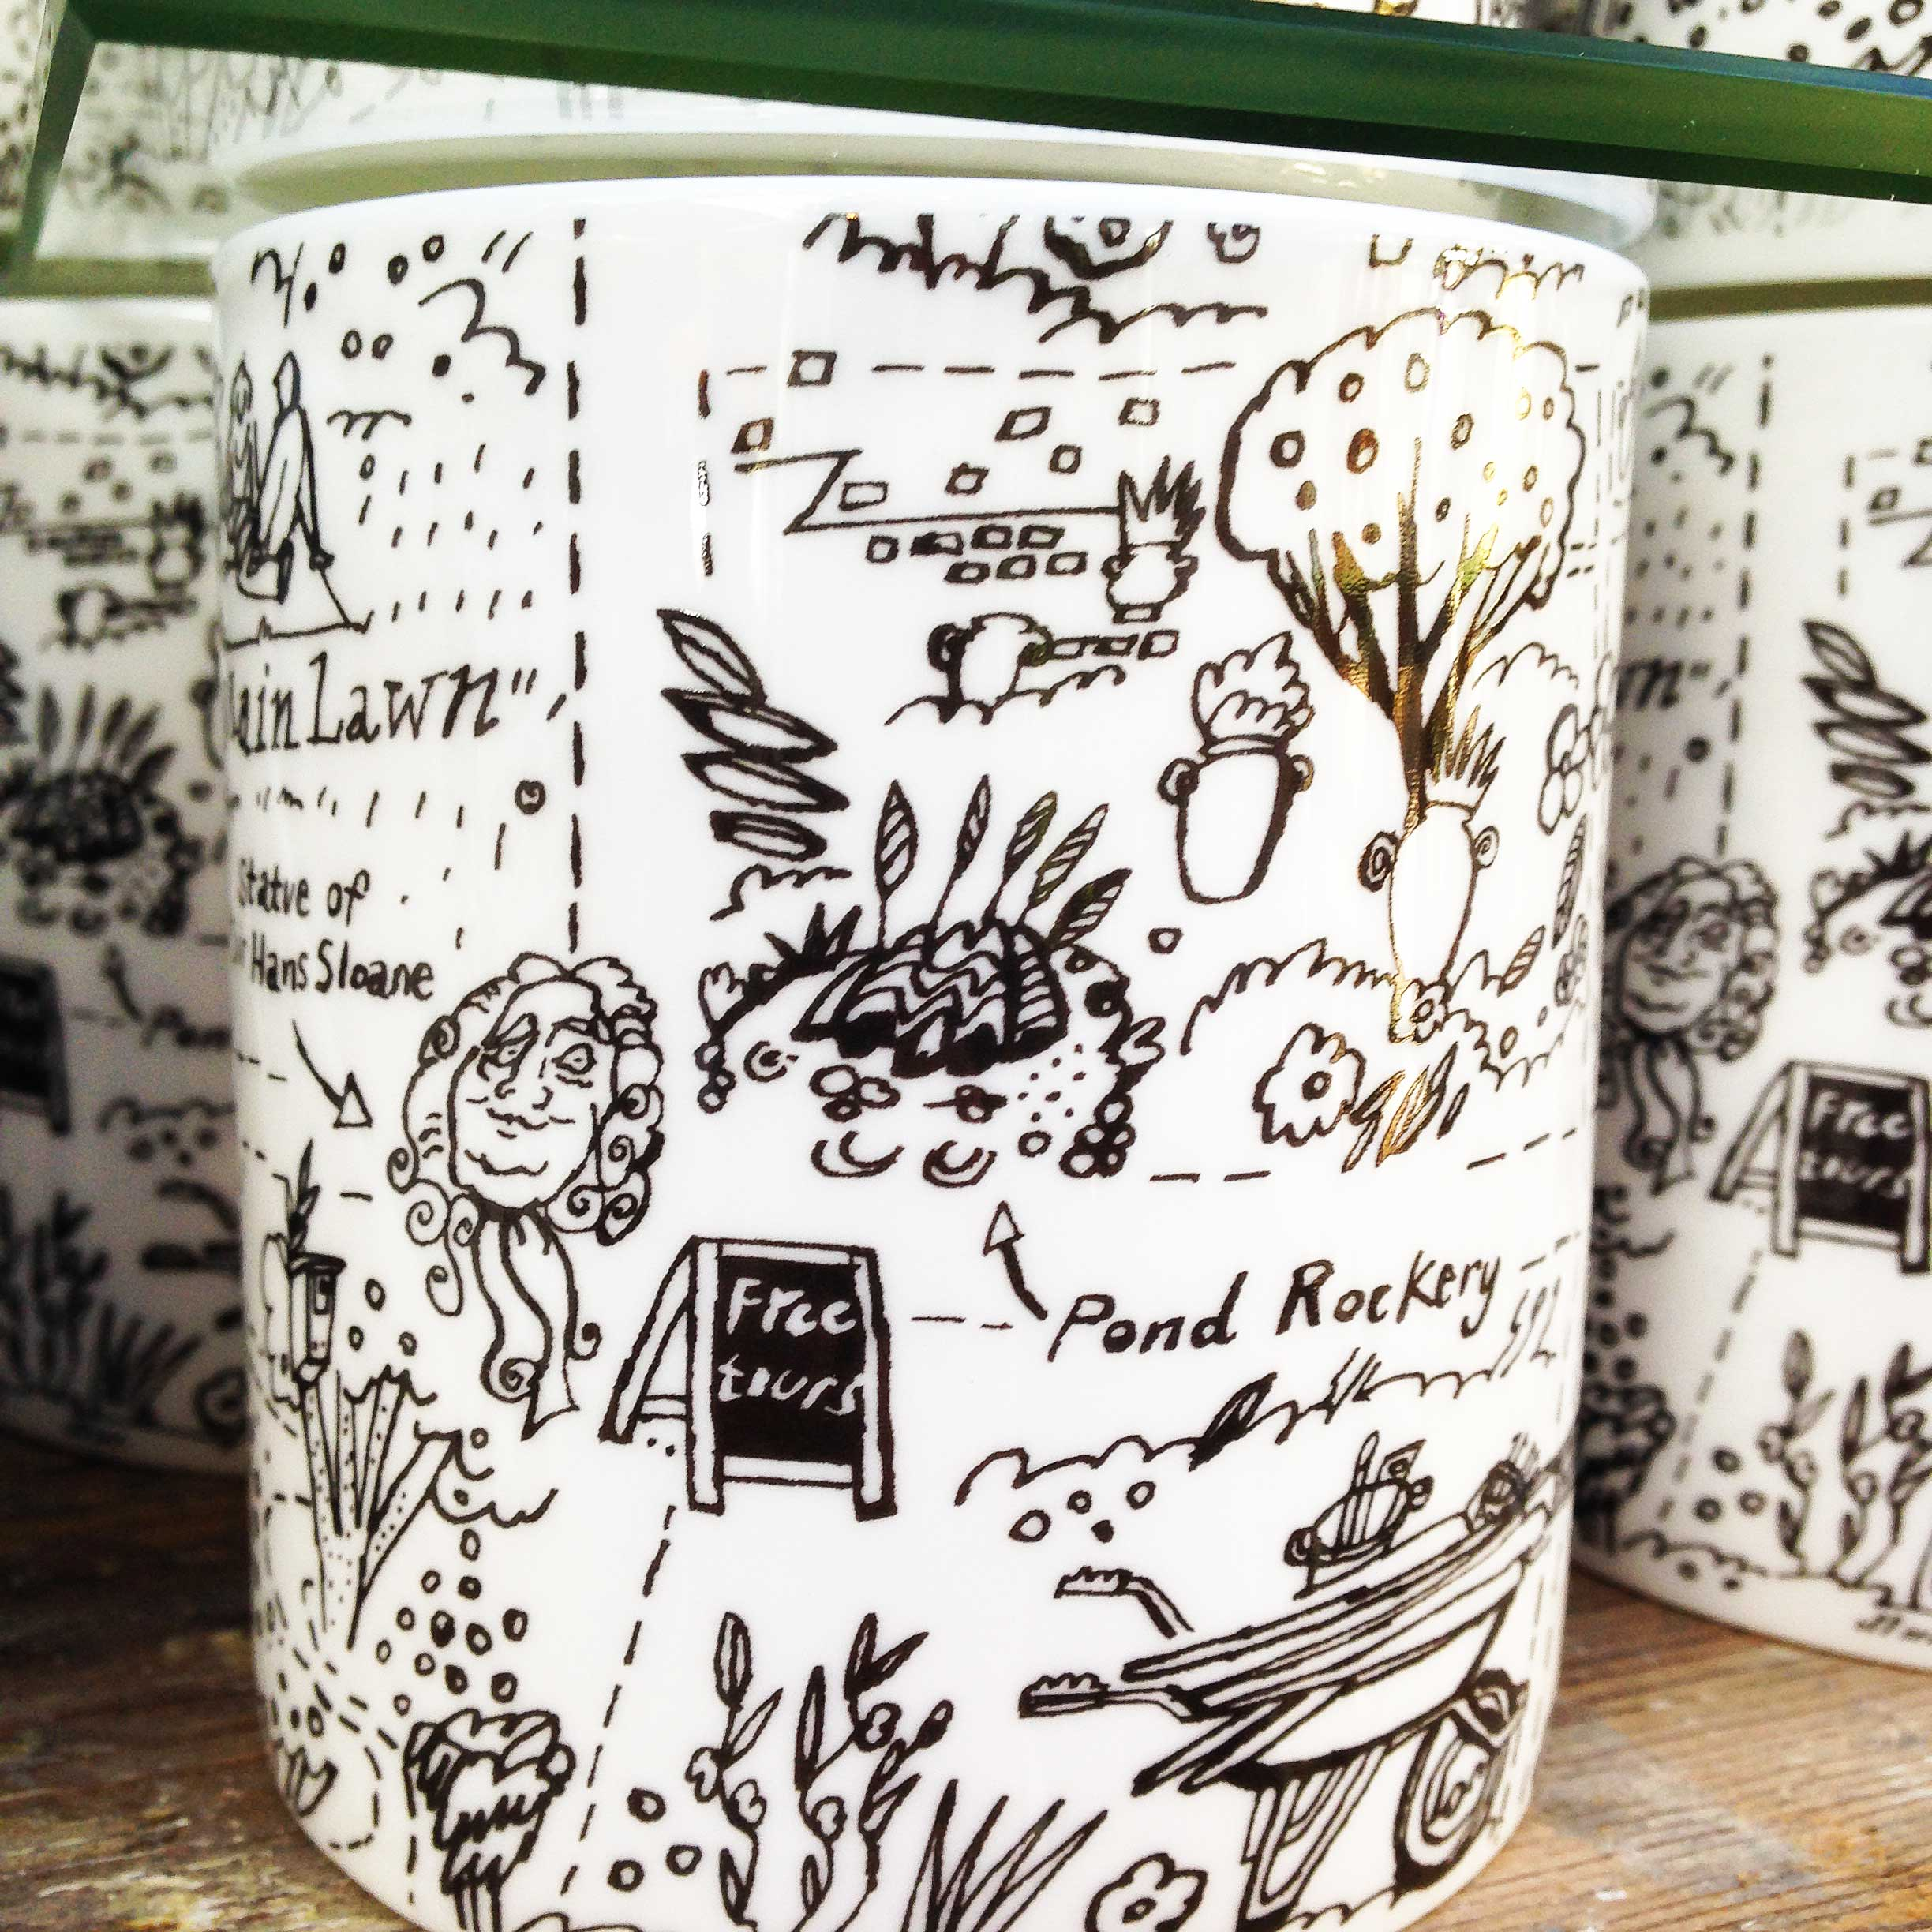 Chelsea Physic Garden mugs by James Oses, image 3